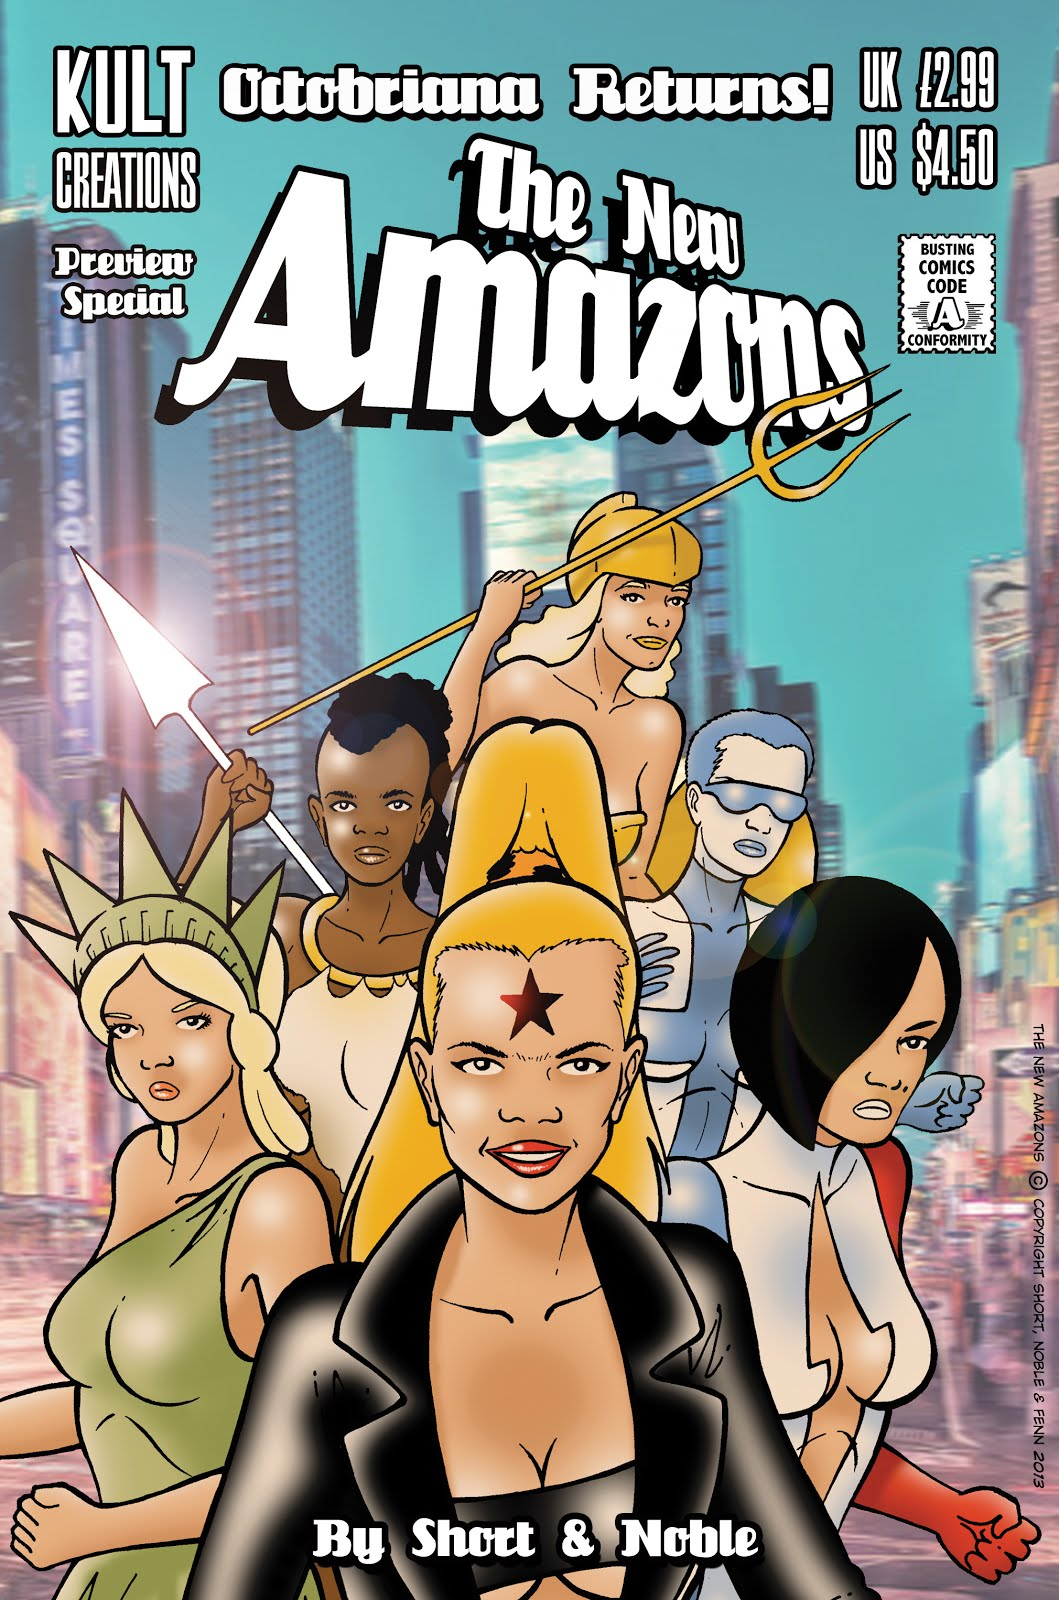 Buy THE NEW AMAZONS PREVIEW SPECIAL below!